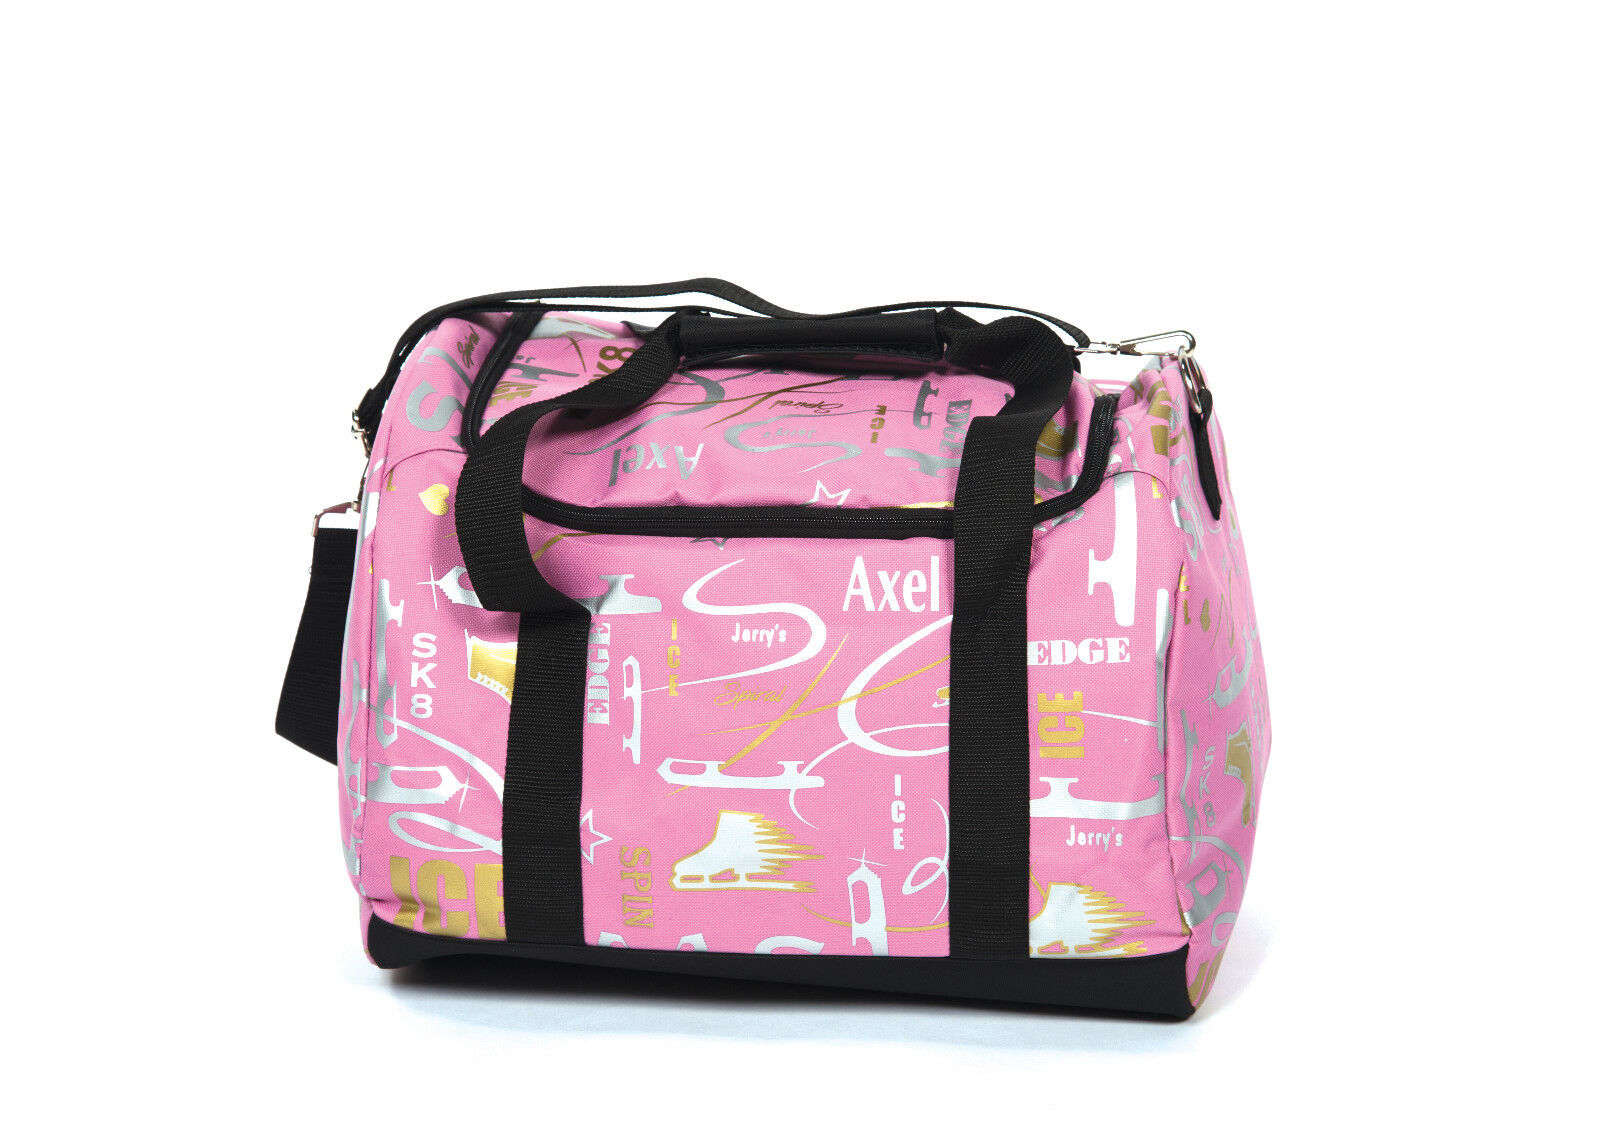 Figure Skating Bags Bag Jerry's 6090 Ice Pink Grafitti Carry All